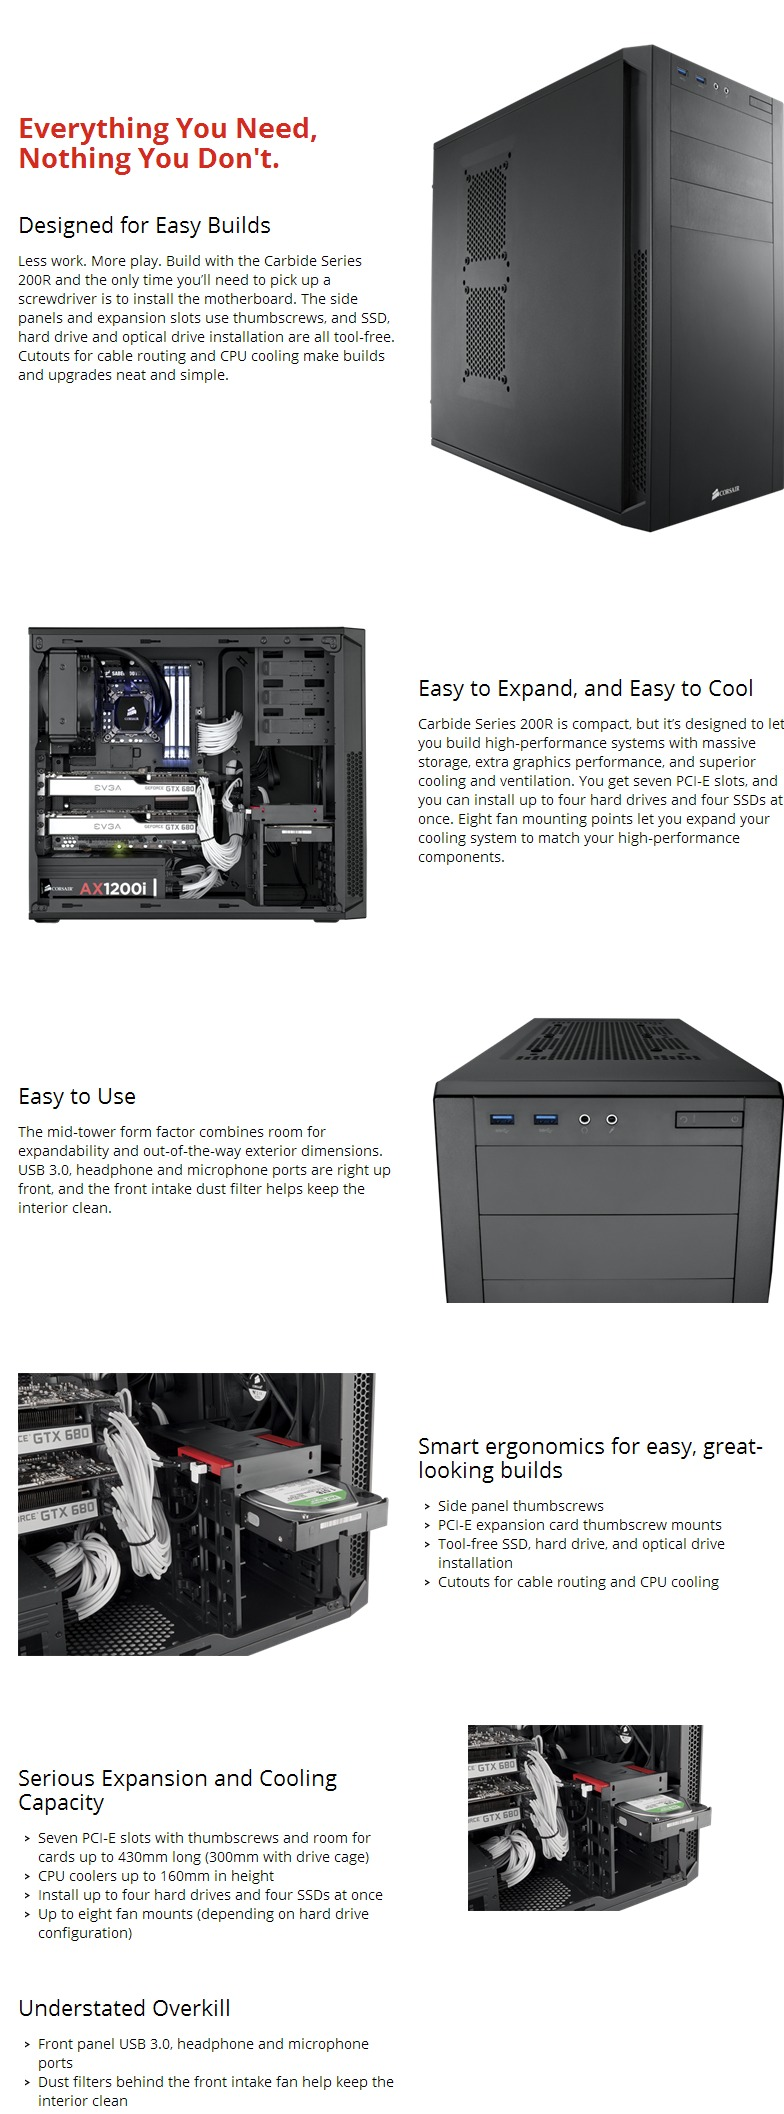 Corsair Carbide Series 200R Compact ATX Case with Window, A compact,  builder-friendly case designed